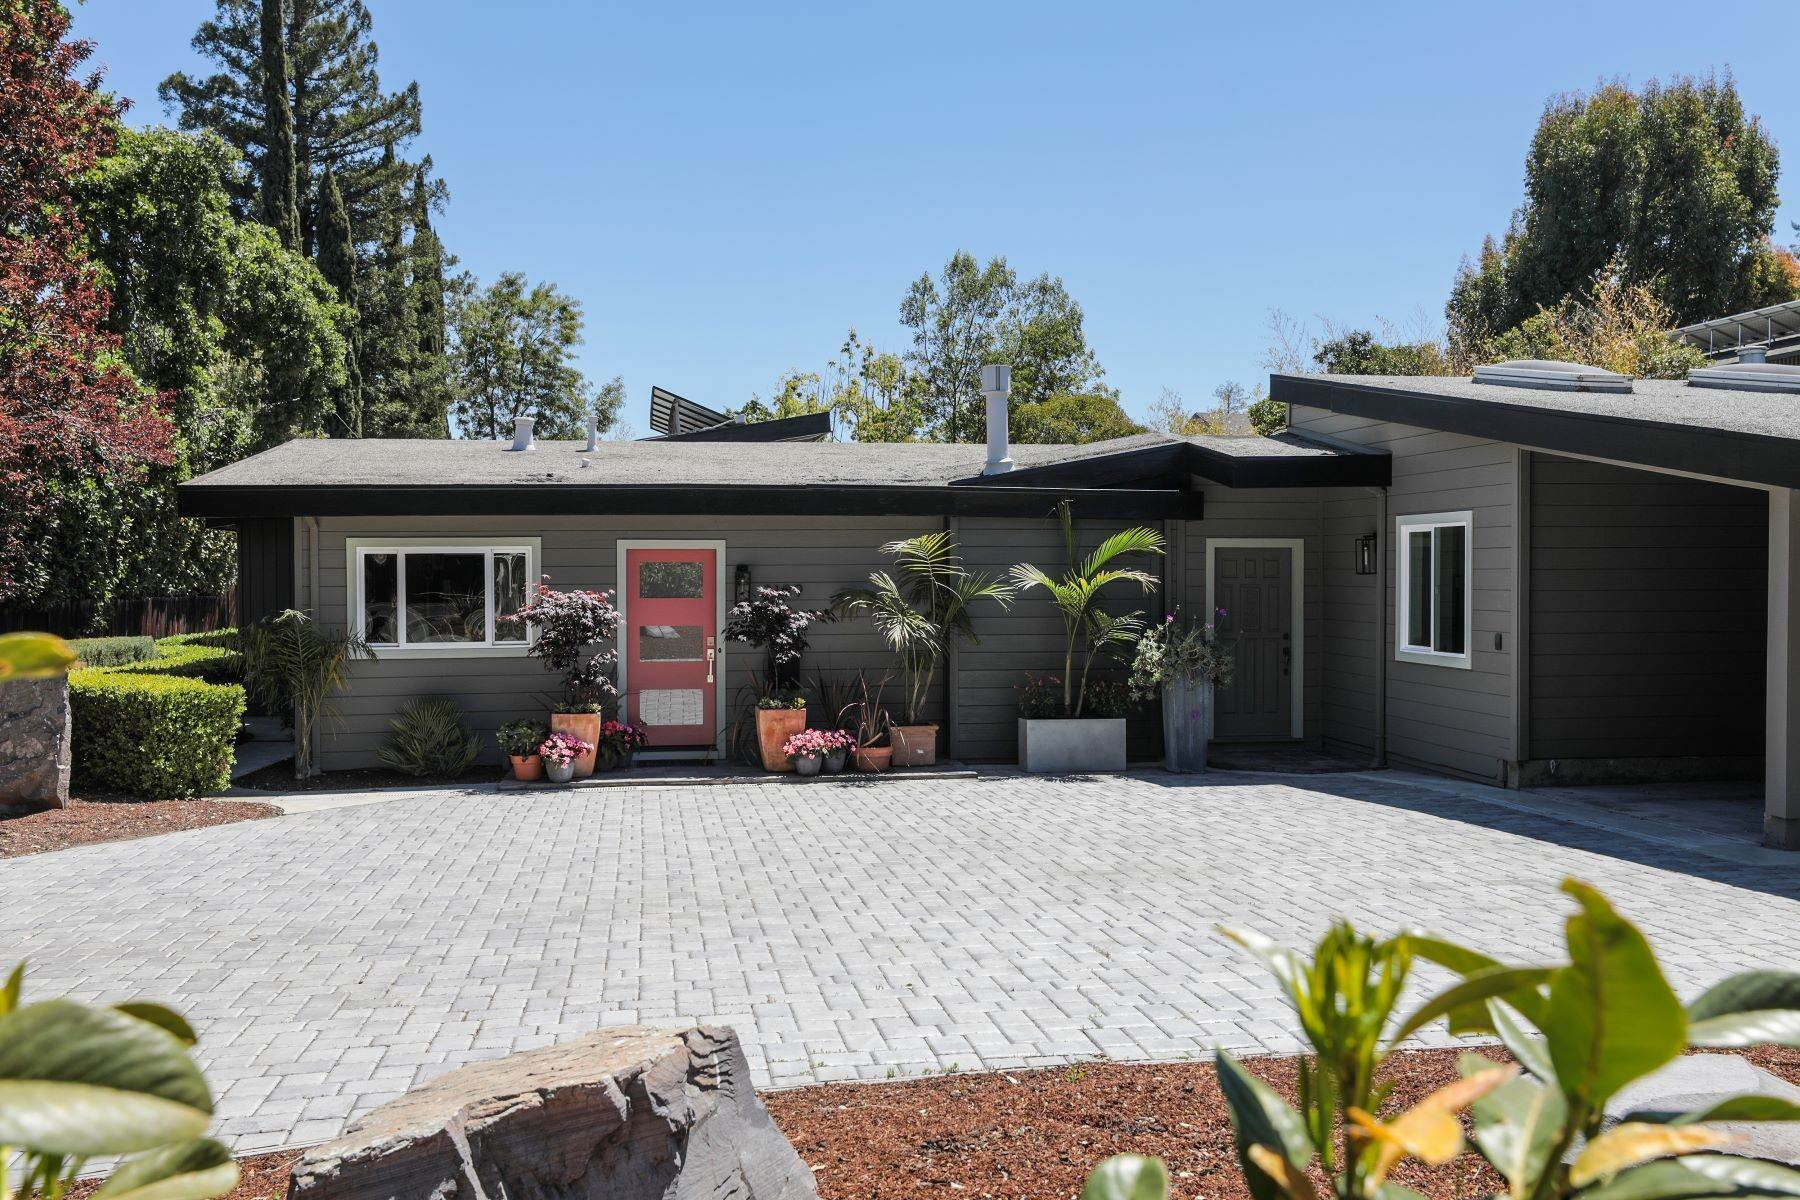 Single Family Homes for Sale at Mid Century Vibes in Menlo Park 2199 Sharon Road Menlo Park, California 94025 United States